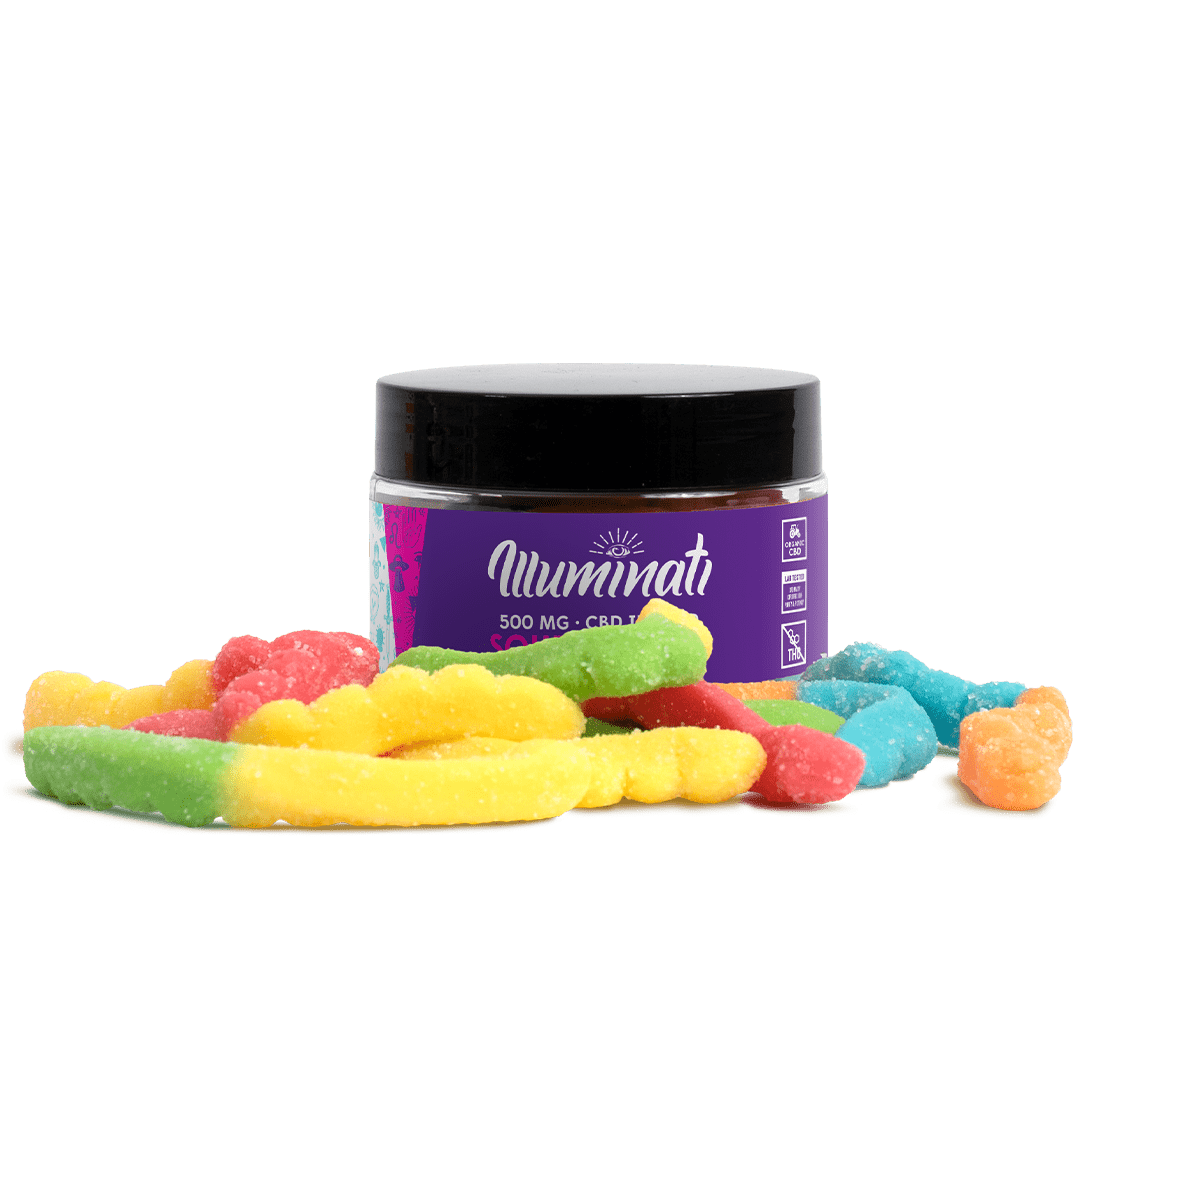 Illuminati CBD Sour Worms 500mg Jar